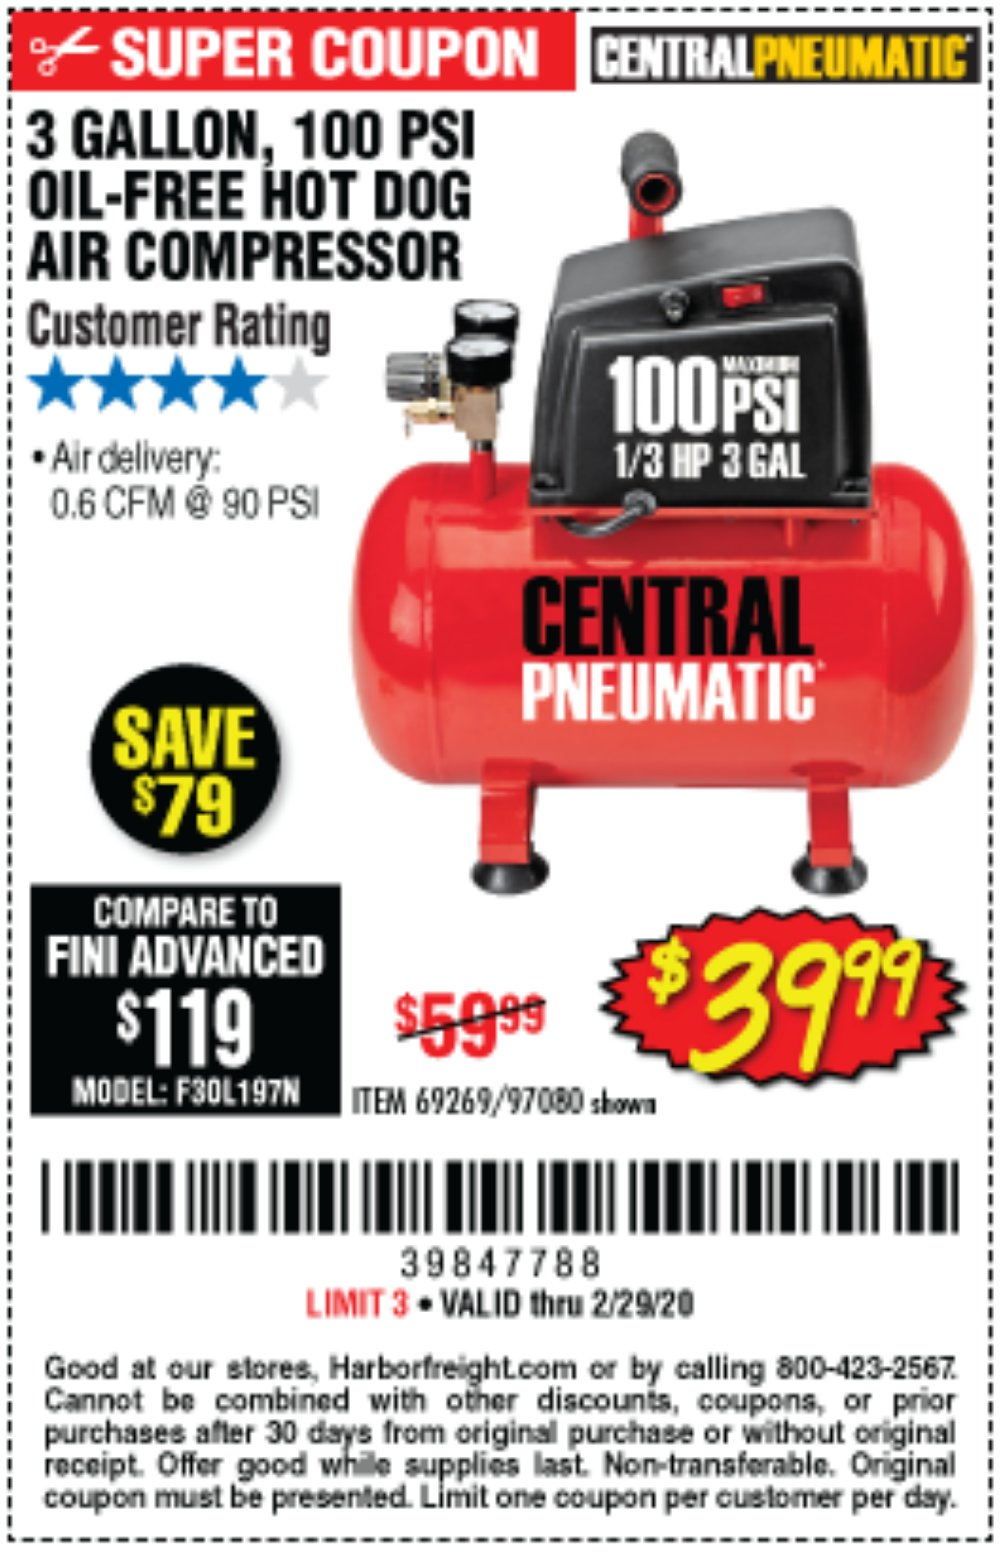 Harbor Freight Coupon, HF Coupons - 3 Gal. 1/3 Hp 100 Psi Oil-free Hotdog Air Compressor